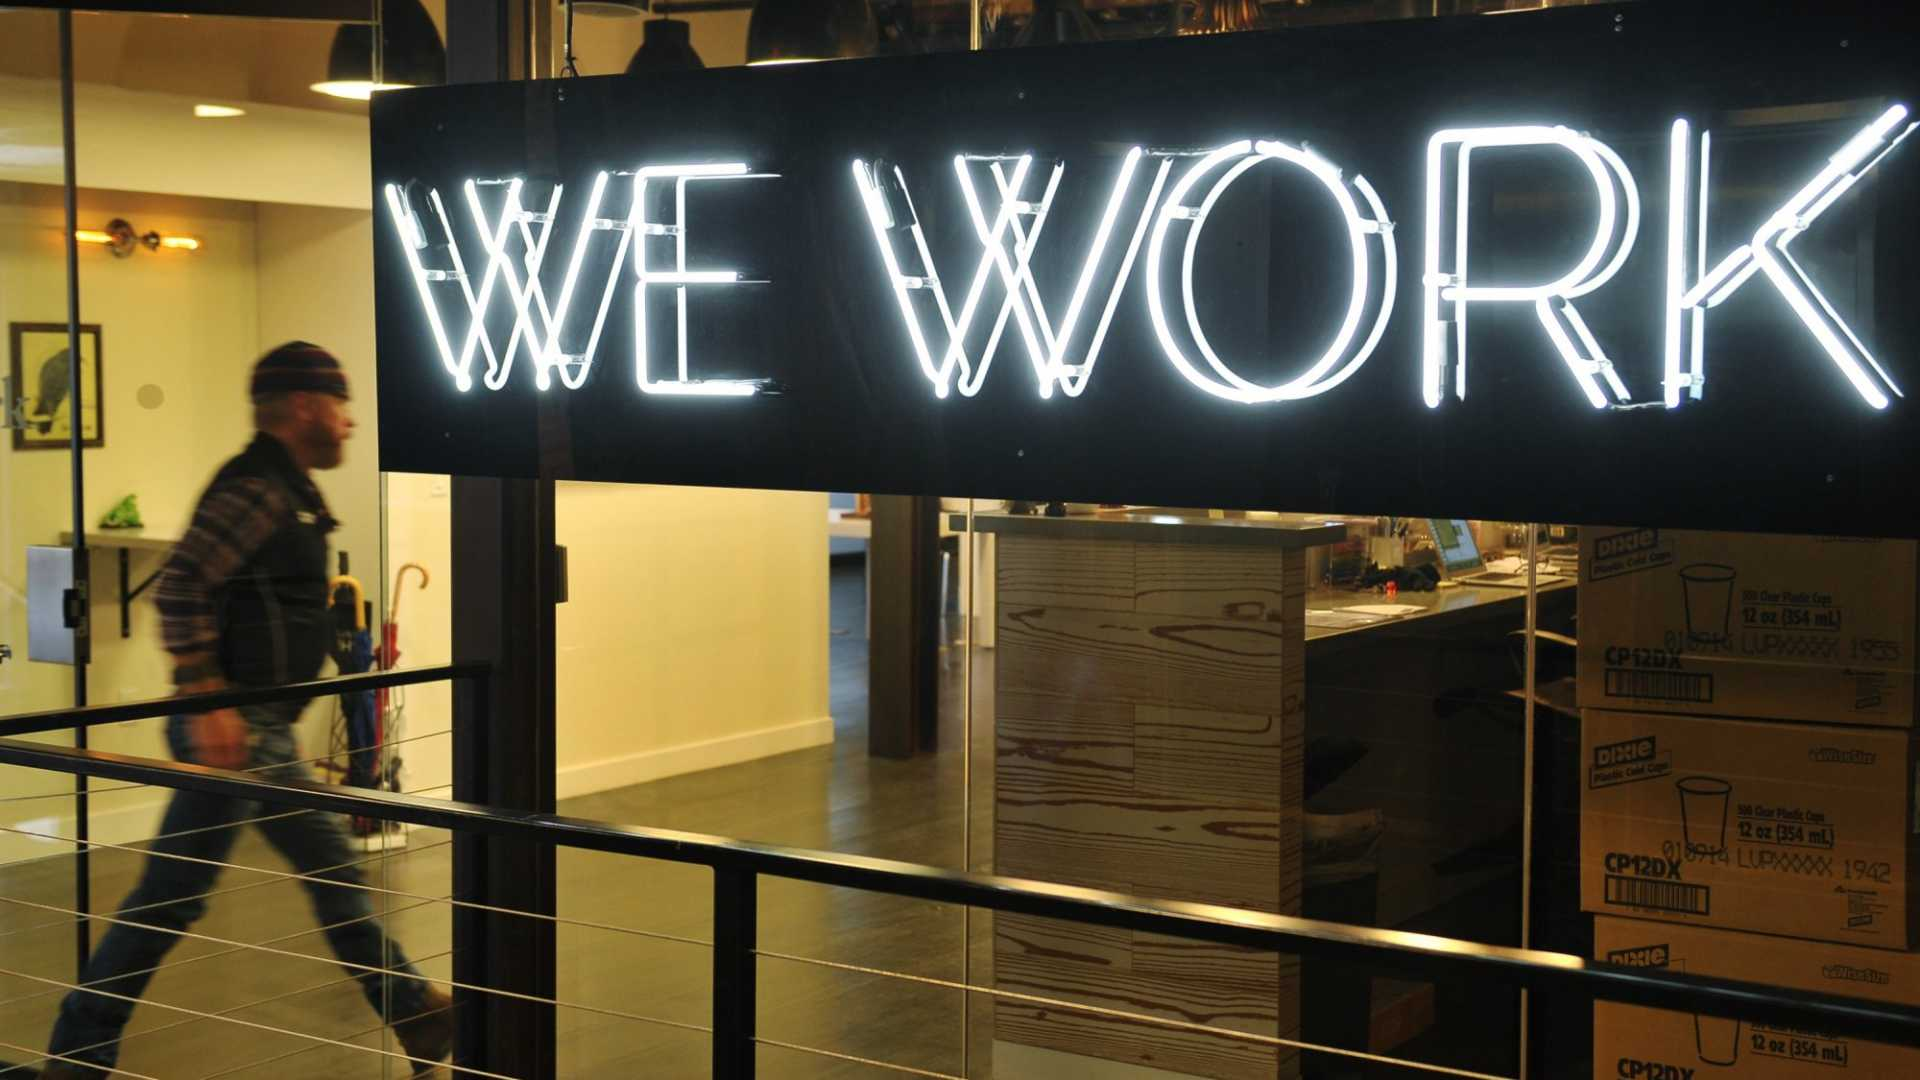 Former WeWork Executives Are Suing the Company for Discrimination, Ahead of its IPO